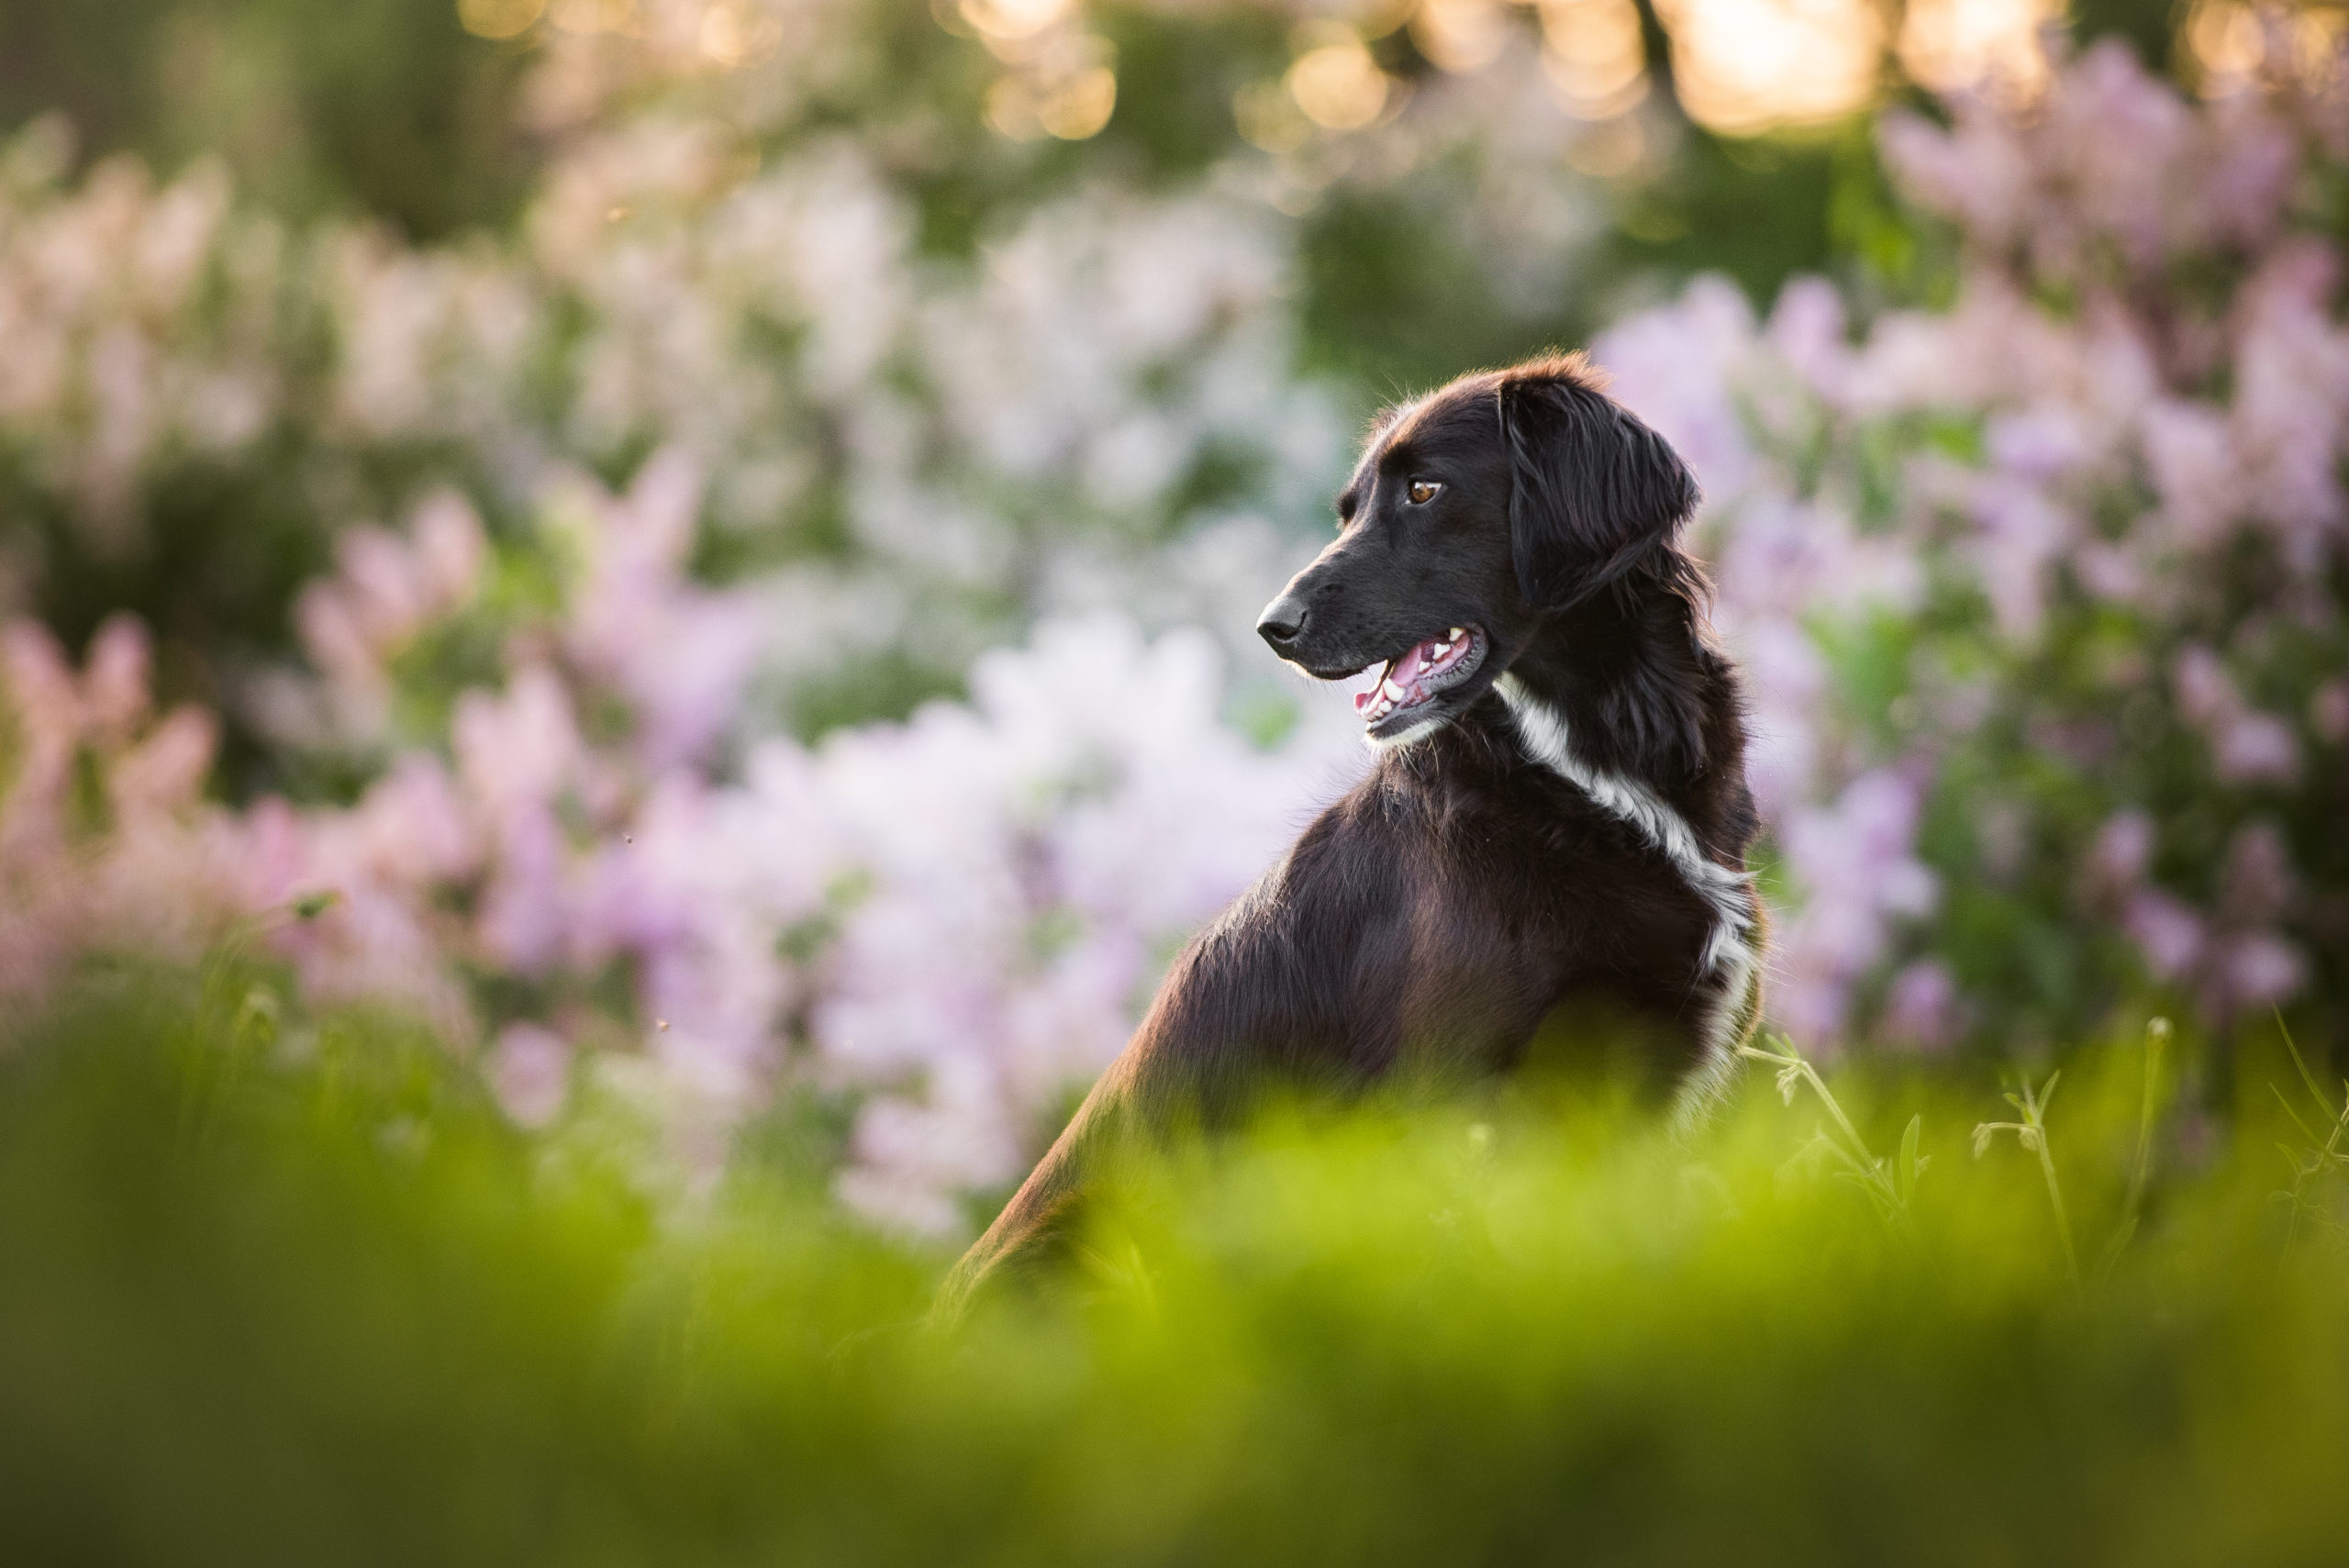 A cute black dog photographed in ambient light with strong bokeh.